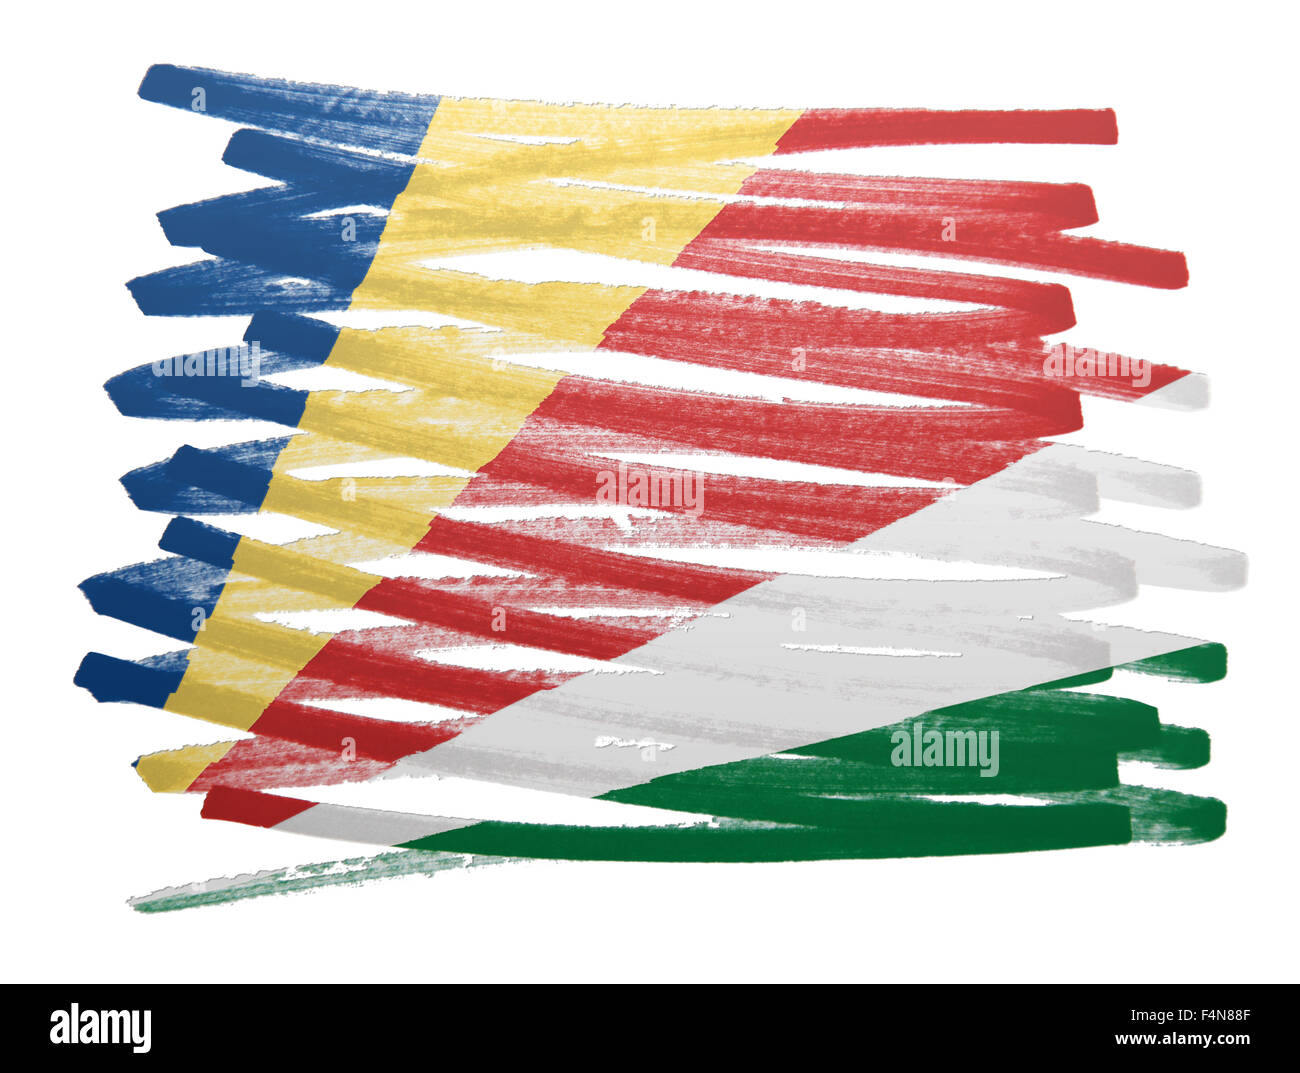 Flag illustration made with pen - Seychelles - Stock Image